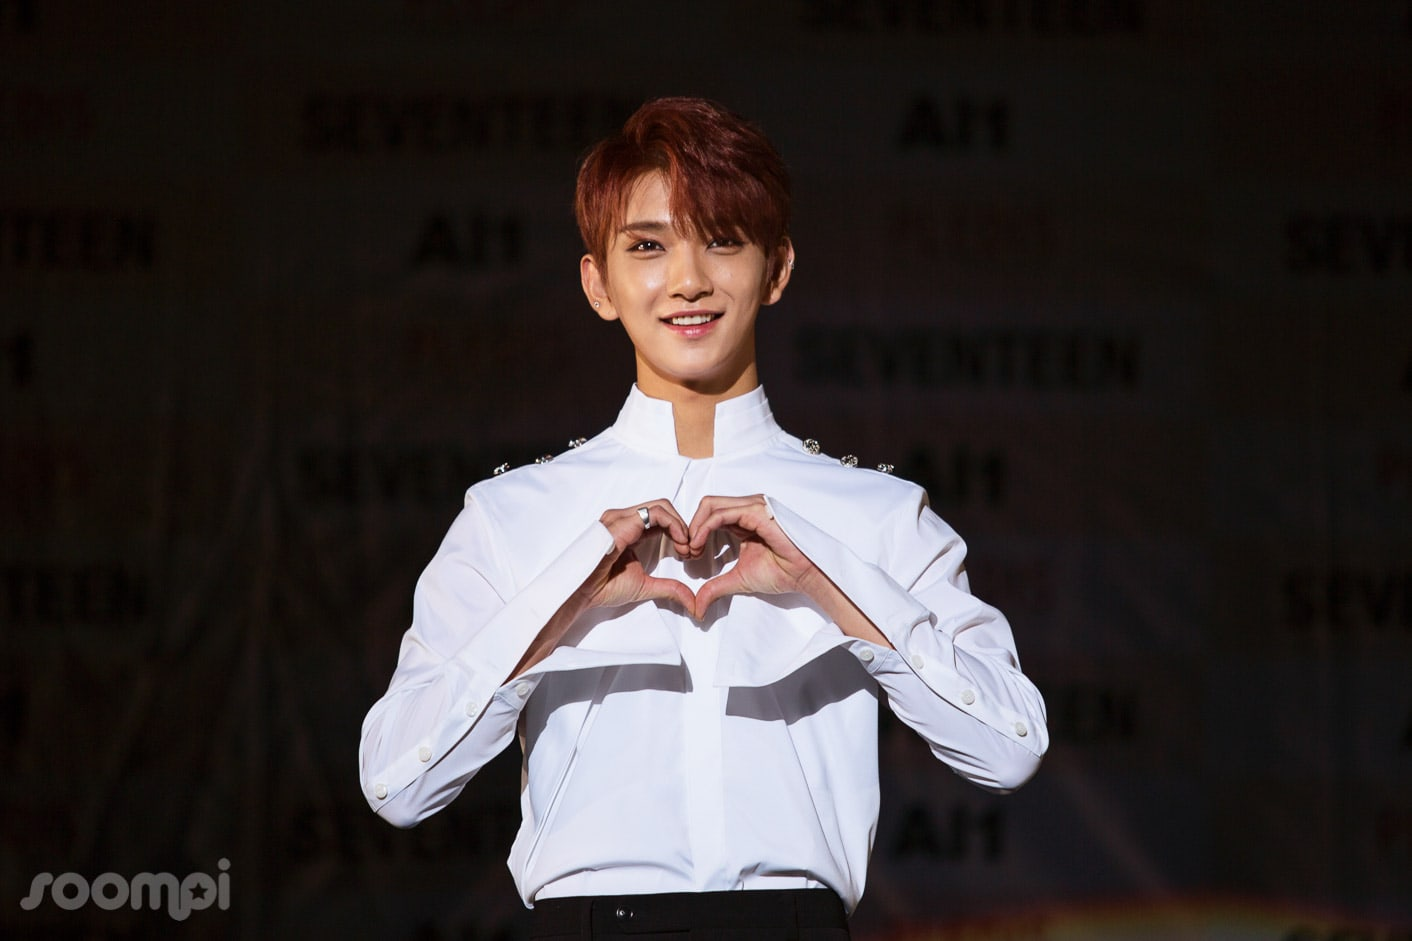 A&W Restaurants Hilariously And Adorably Outs Themselves As Carats To SEVENTEEN's Joshua